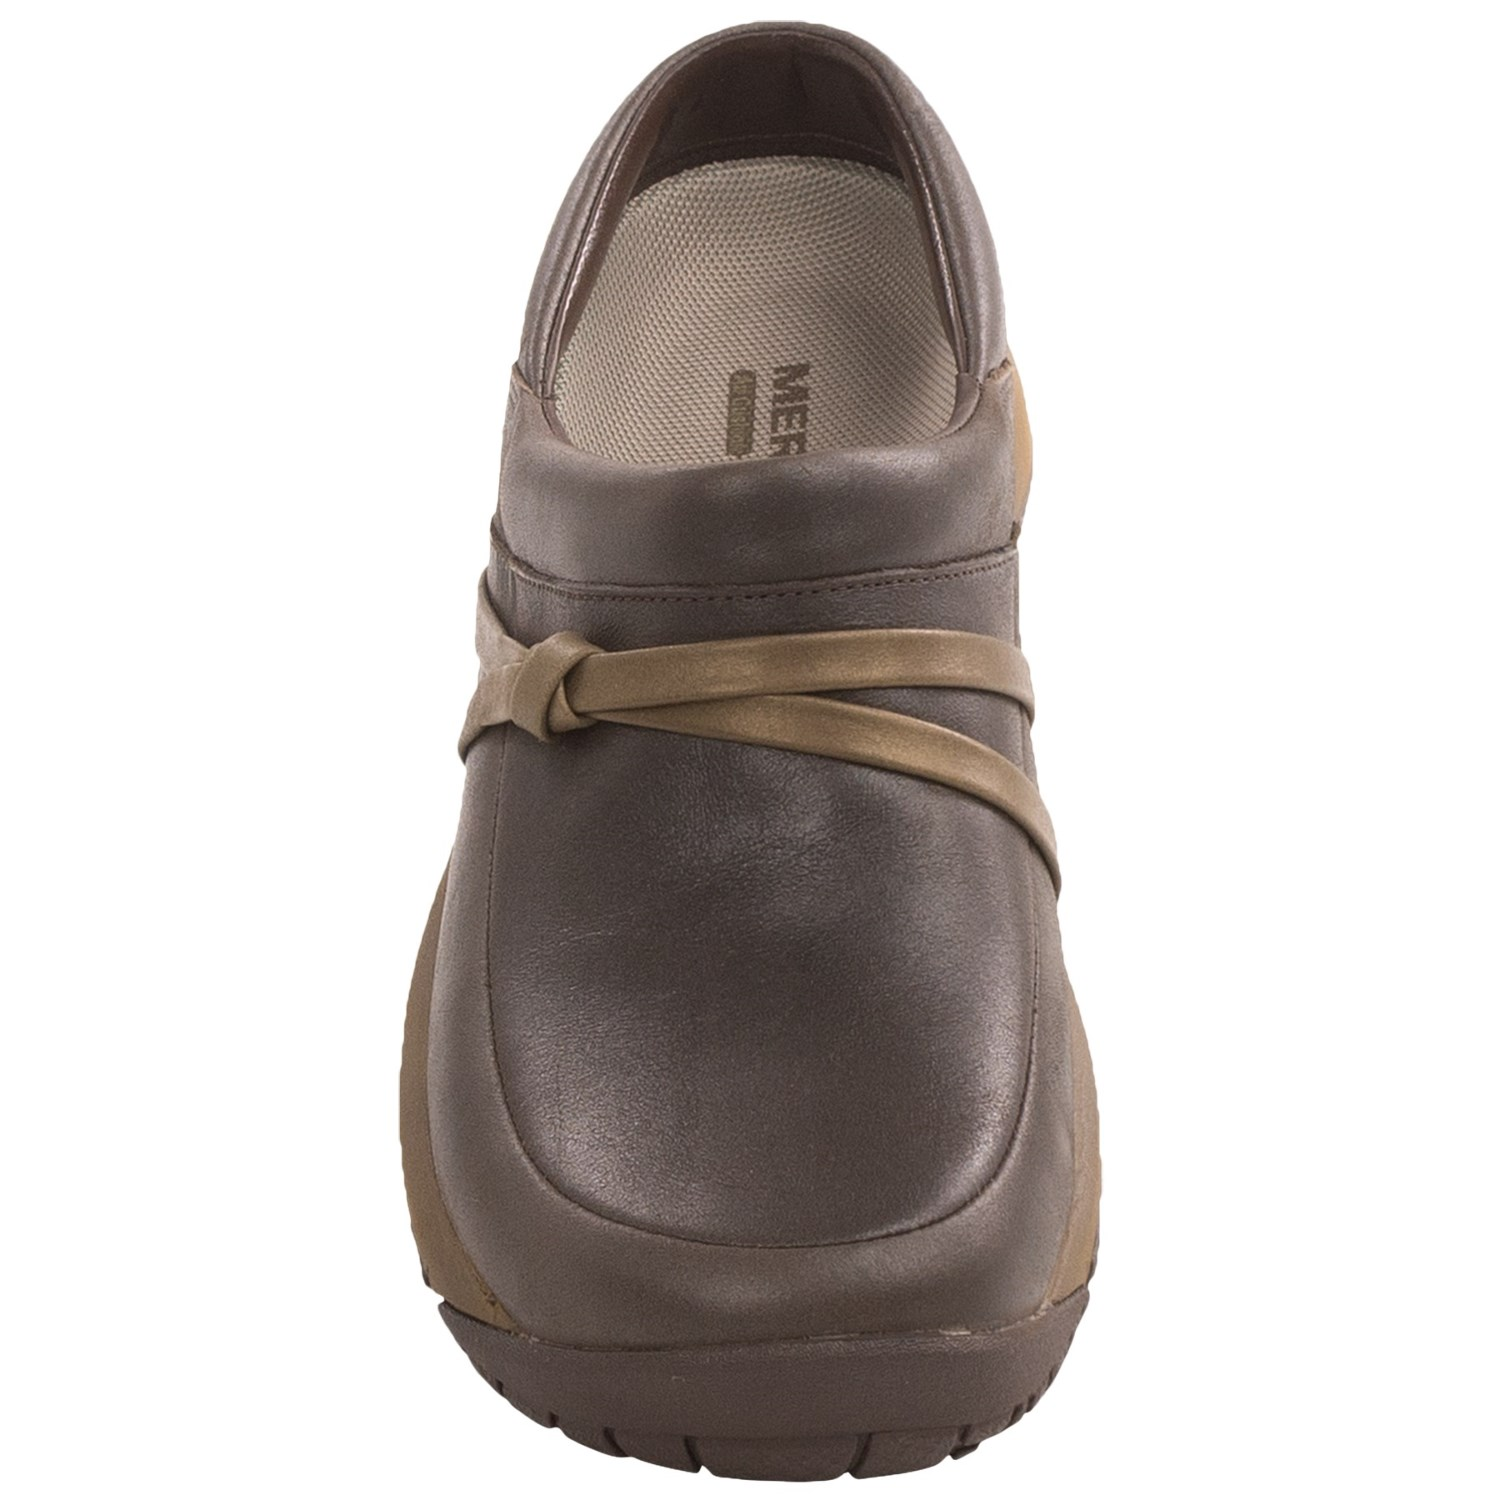 Merrell Shoes Size Up Or Down